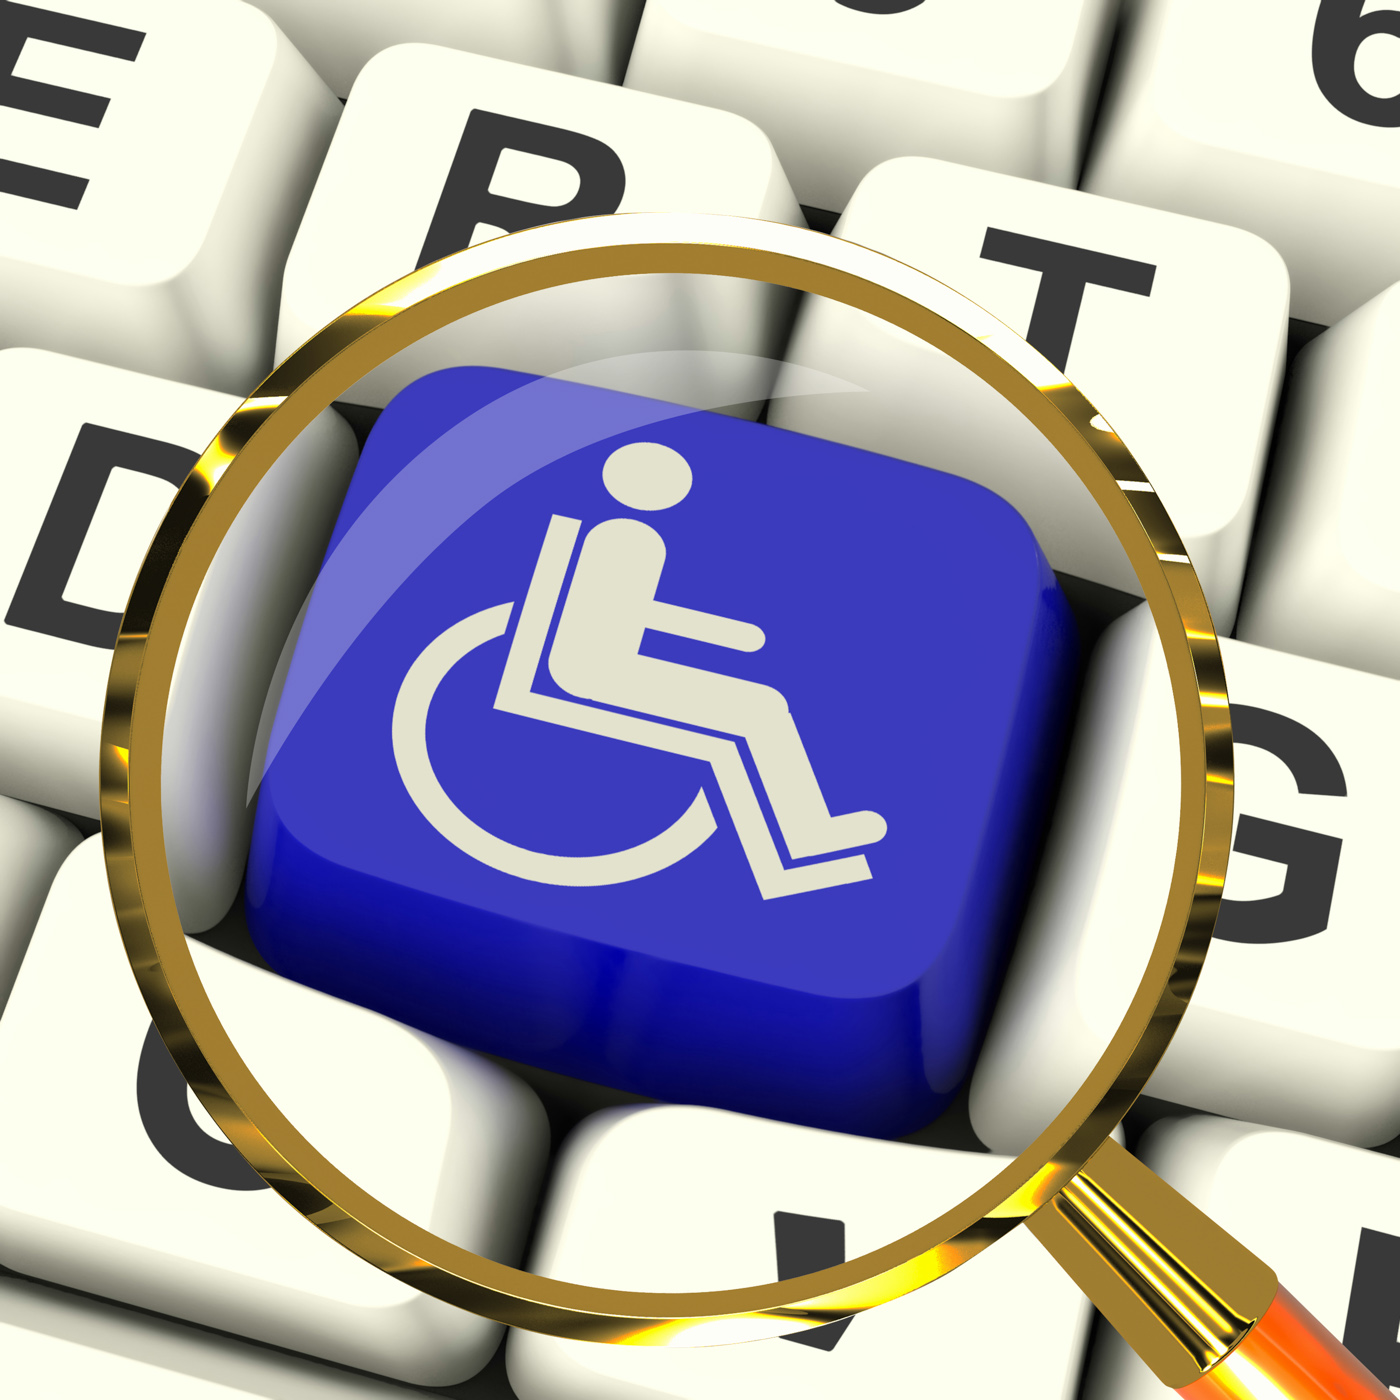 Disabled Key Magnified Shows Wheelchair Access Or Handicapped, Accessibility, Accessible, Disability, Disable, HQ Photo